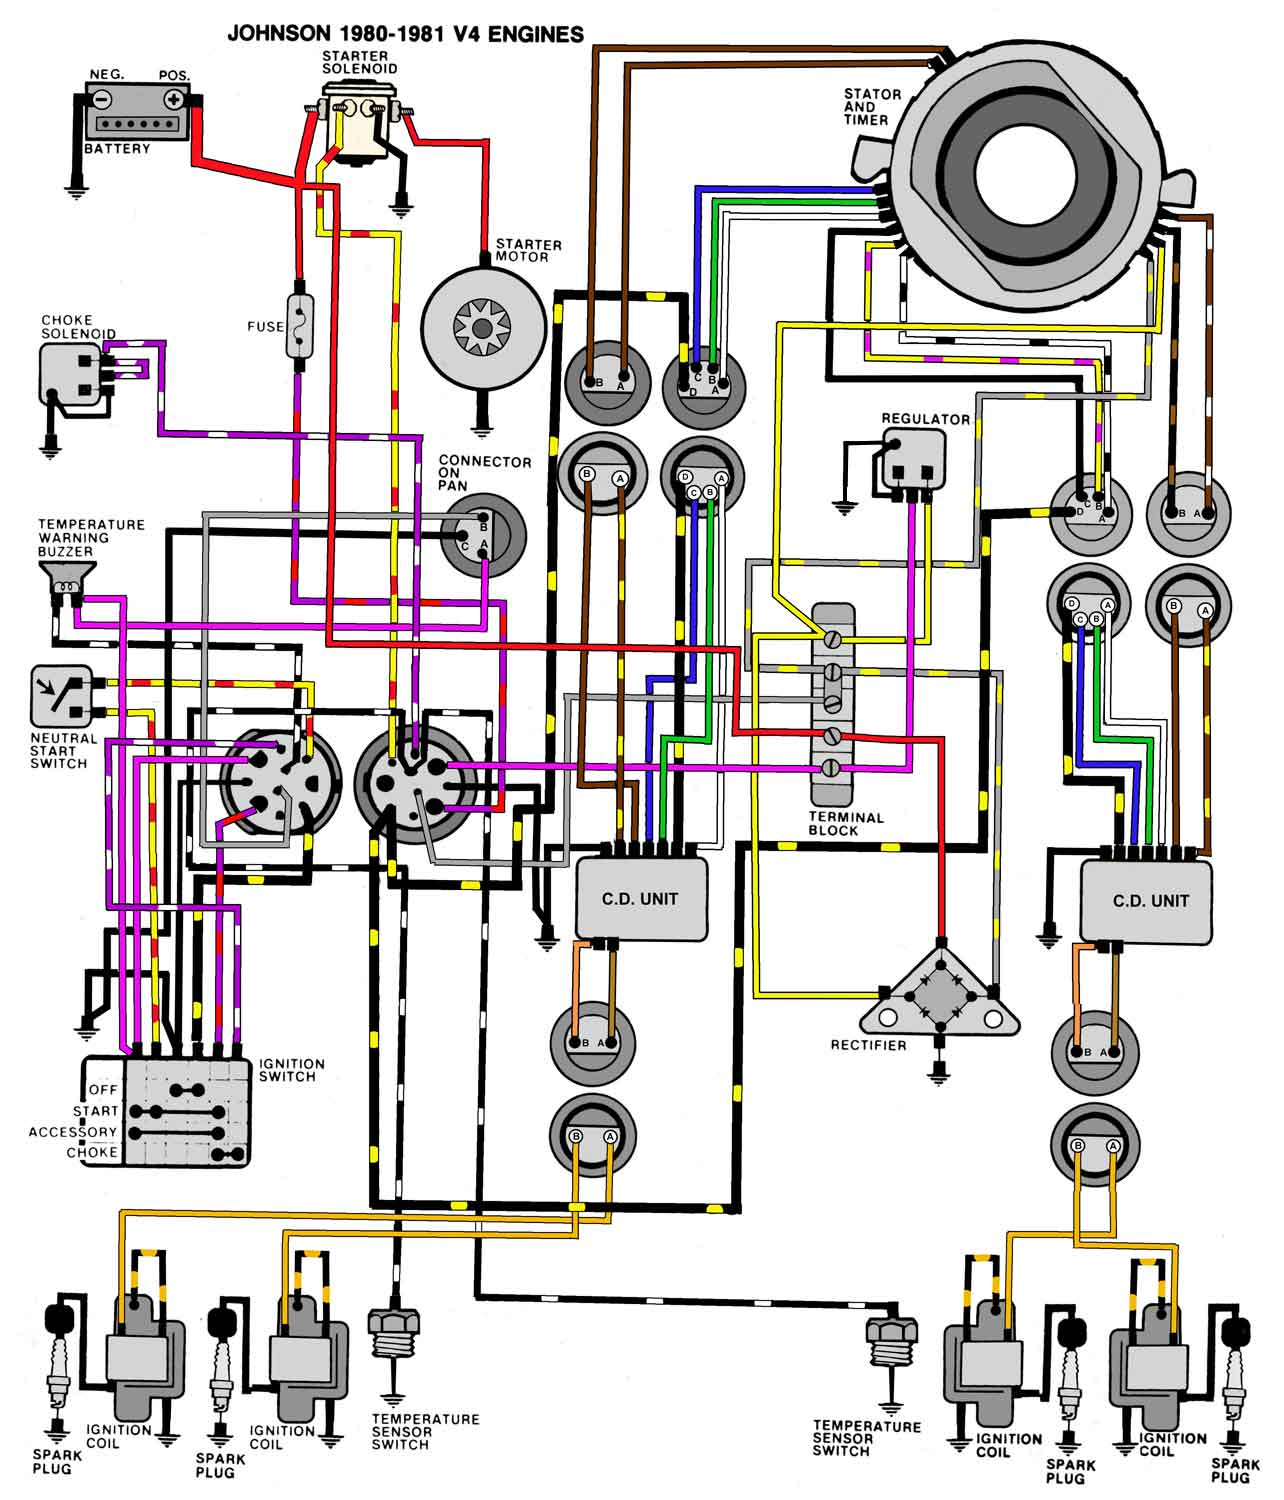 1977 evinrude 85 hp wiring diagram wiring diagram source Evinrude Outboard Wiring Diagram